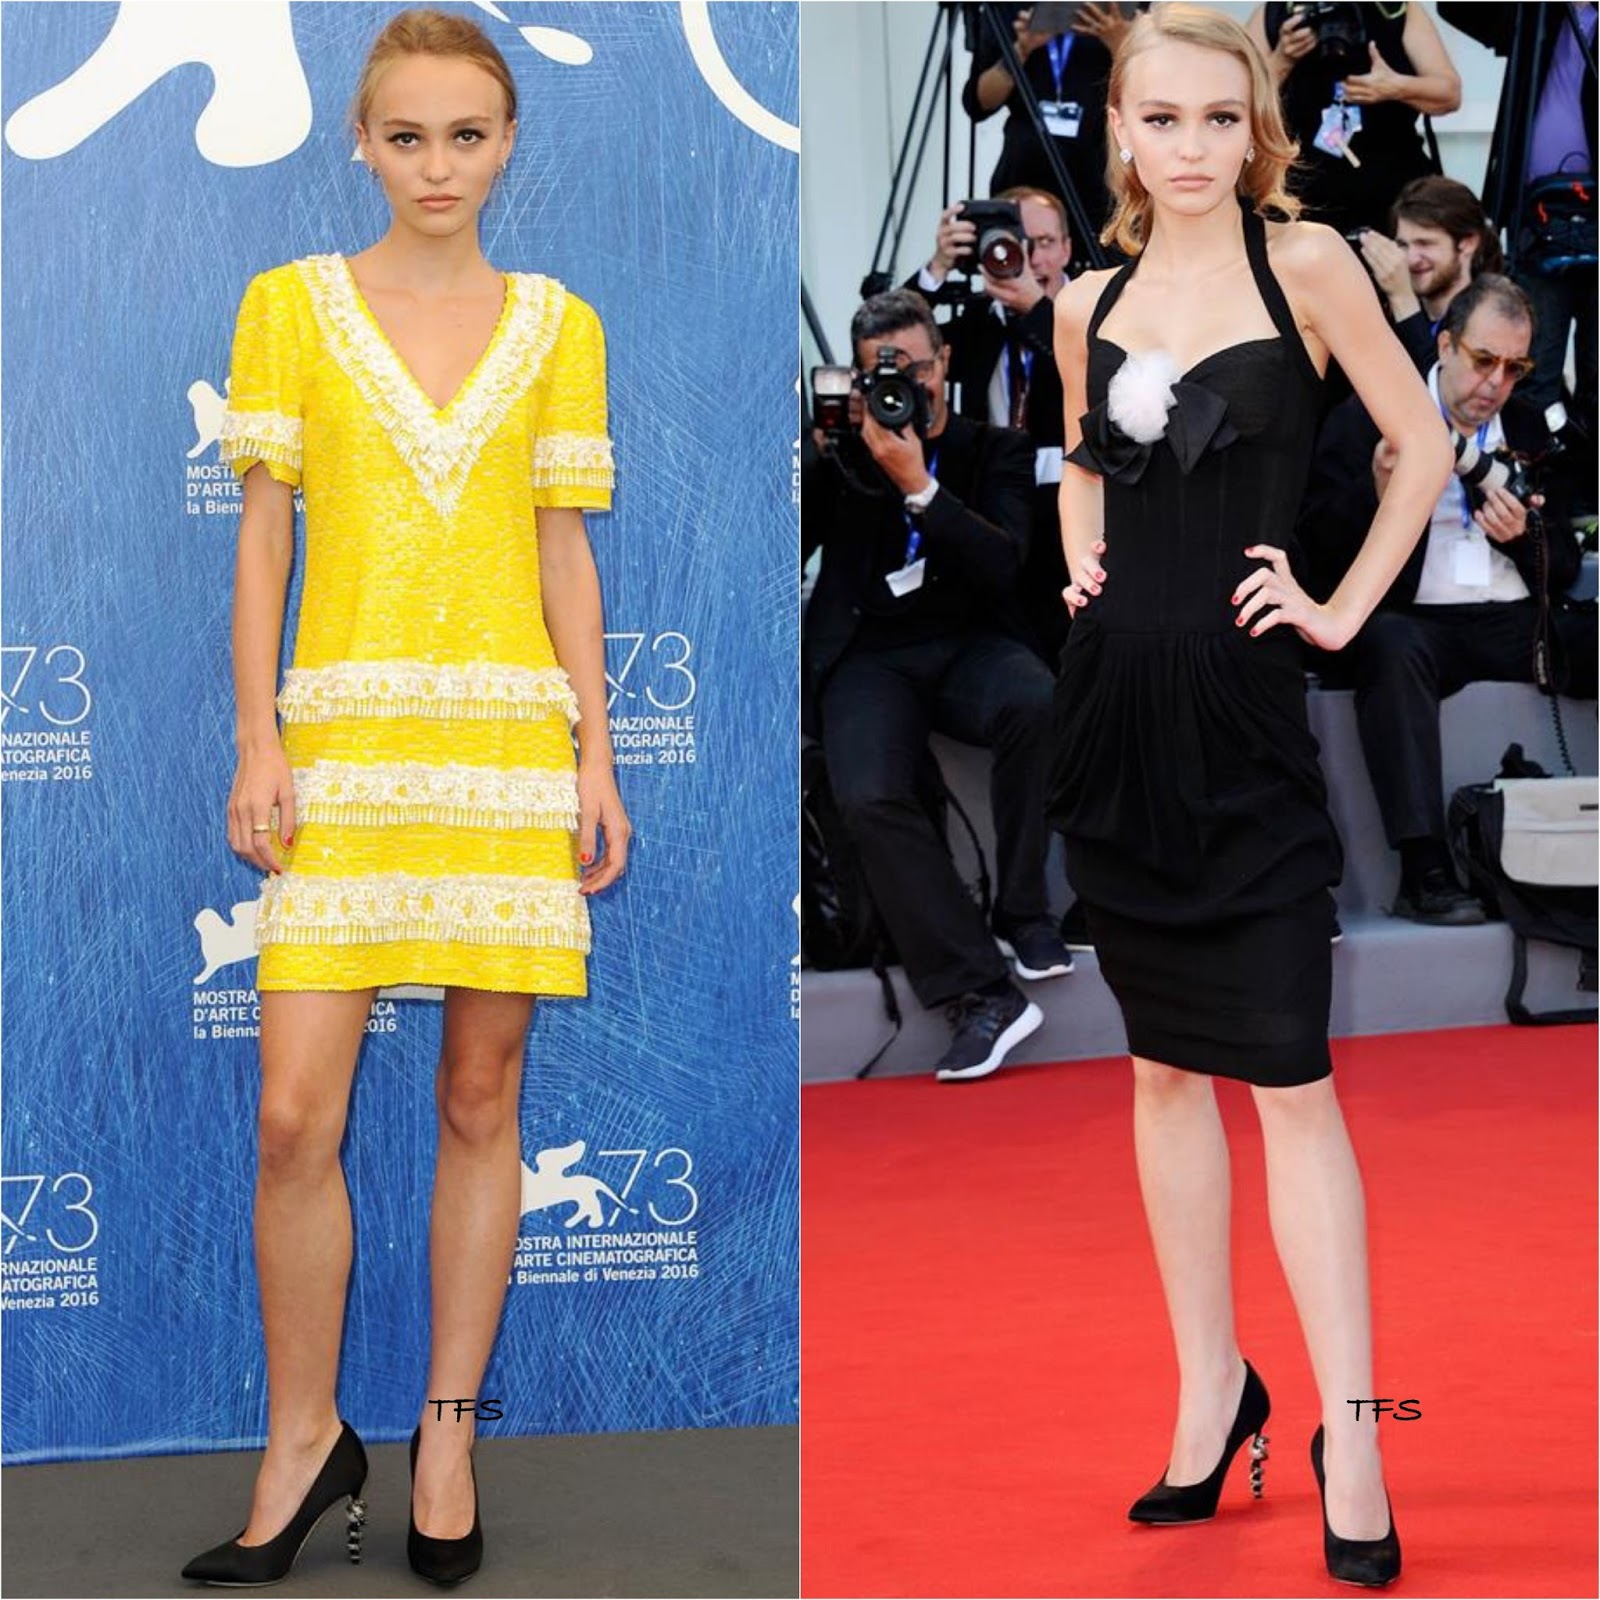 2cec1adc932b Lily-Rose Depp in Chanel at the  Planetarium  73rd Venice Film Festival  Photocall   Premiere